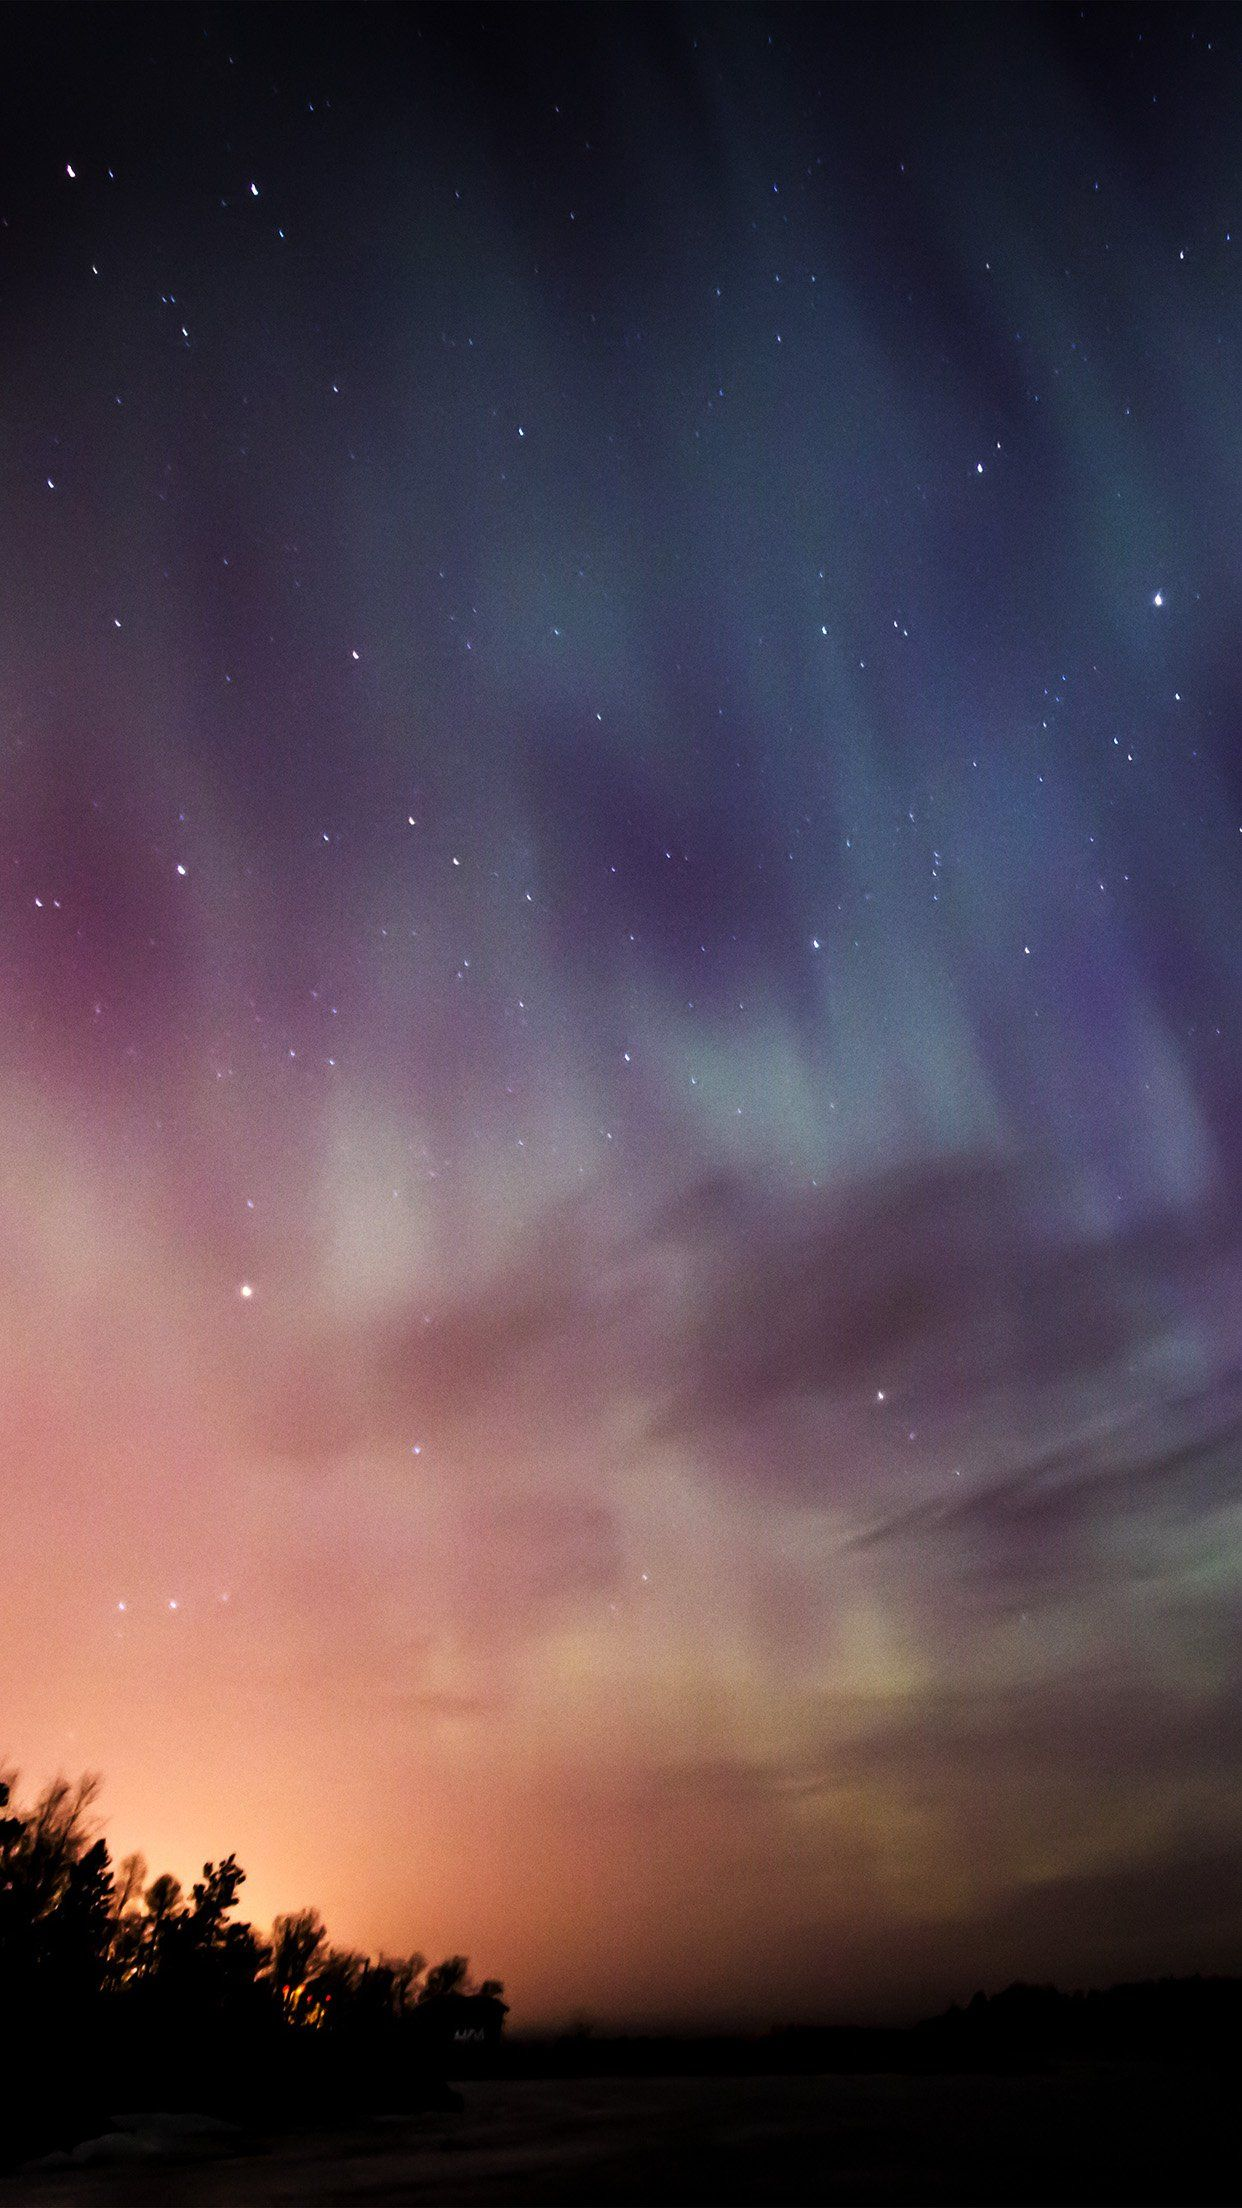 Wallpaper iphone sky - Sky Aurora Night Stars Wonderful Iphone 6 Plus Wallpaper